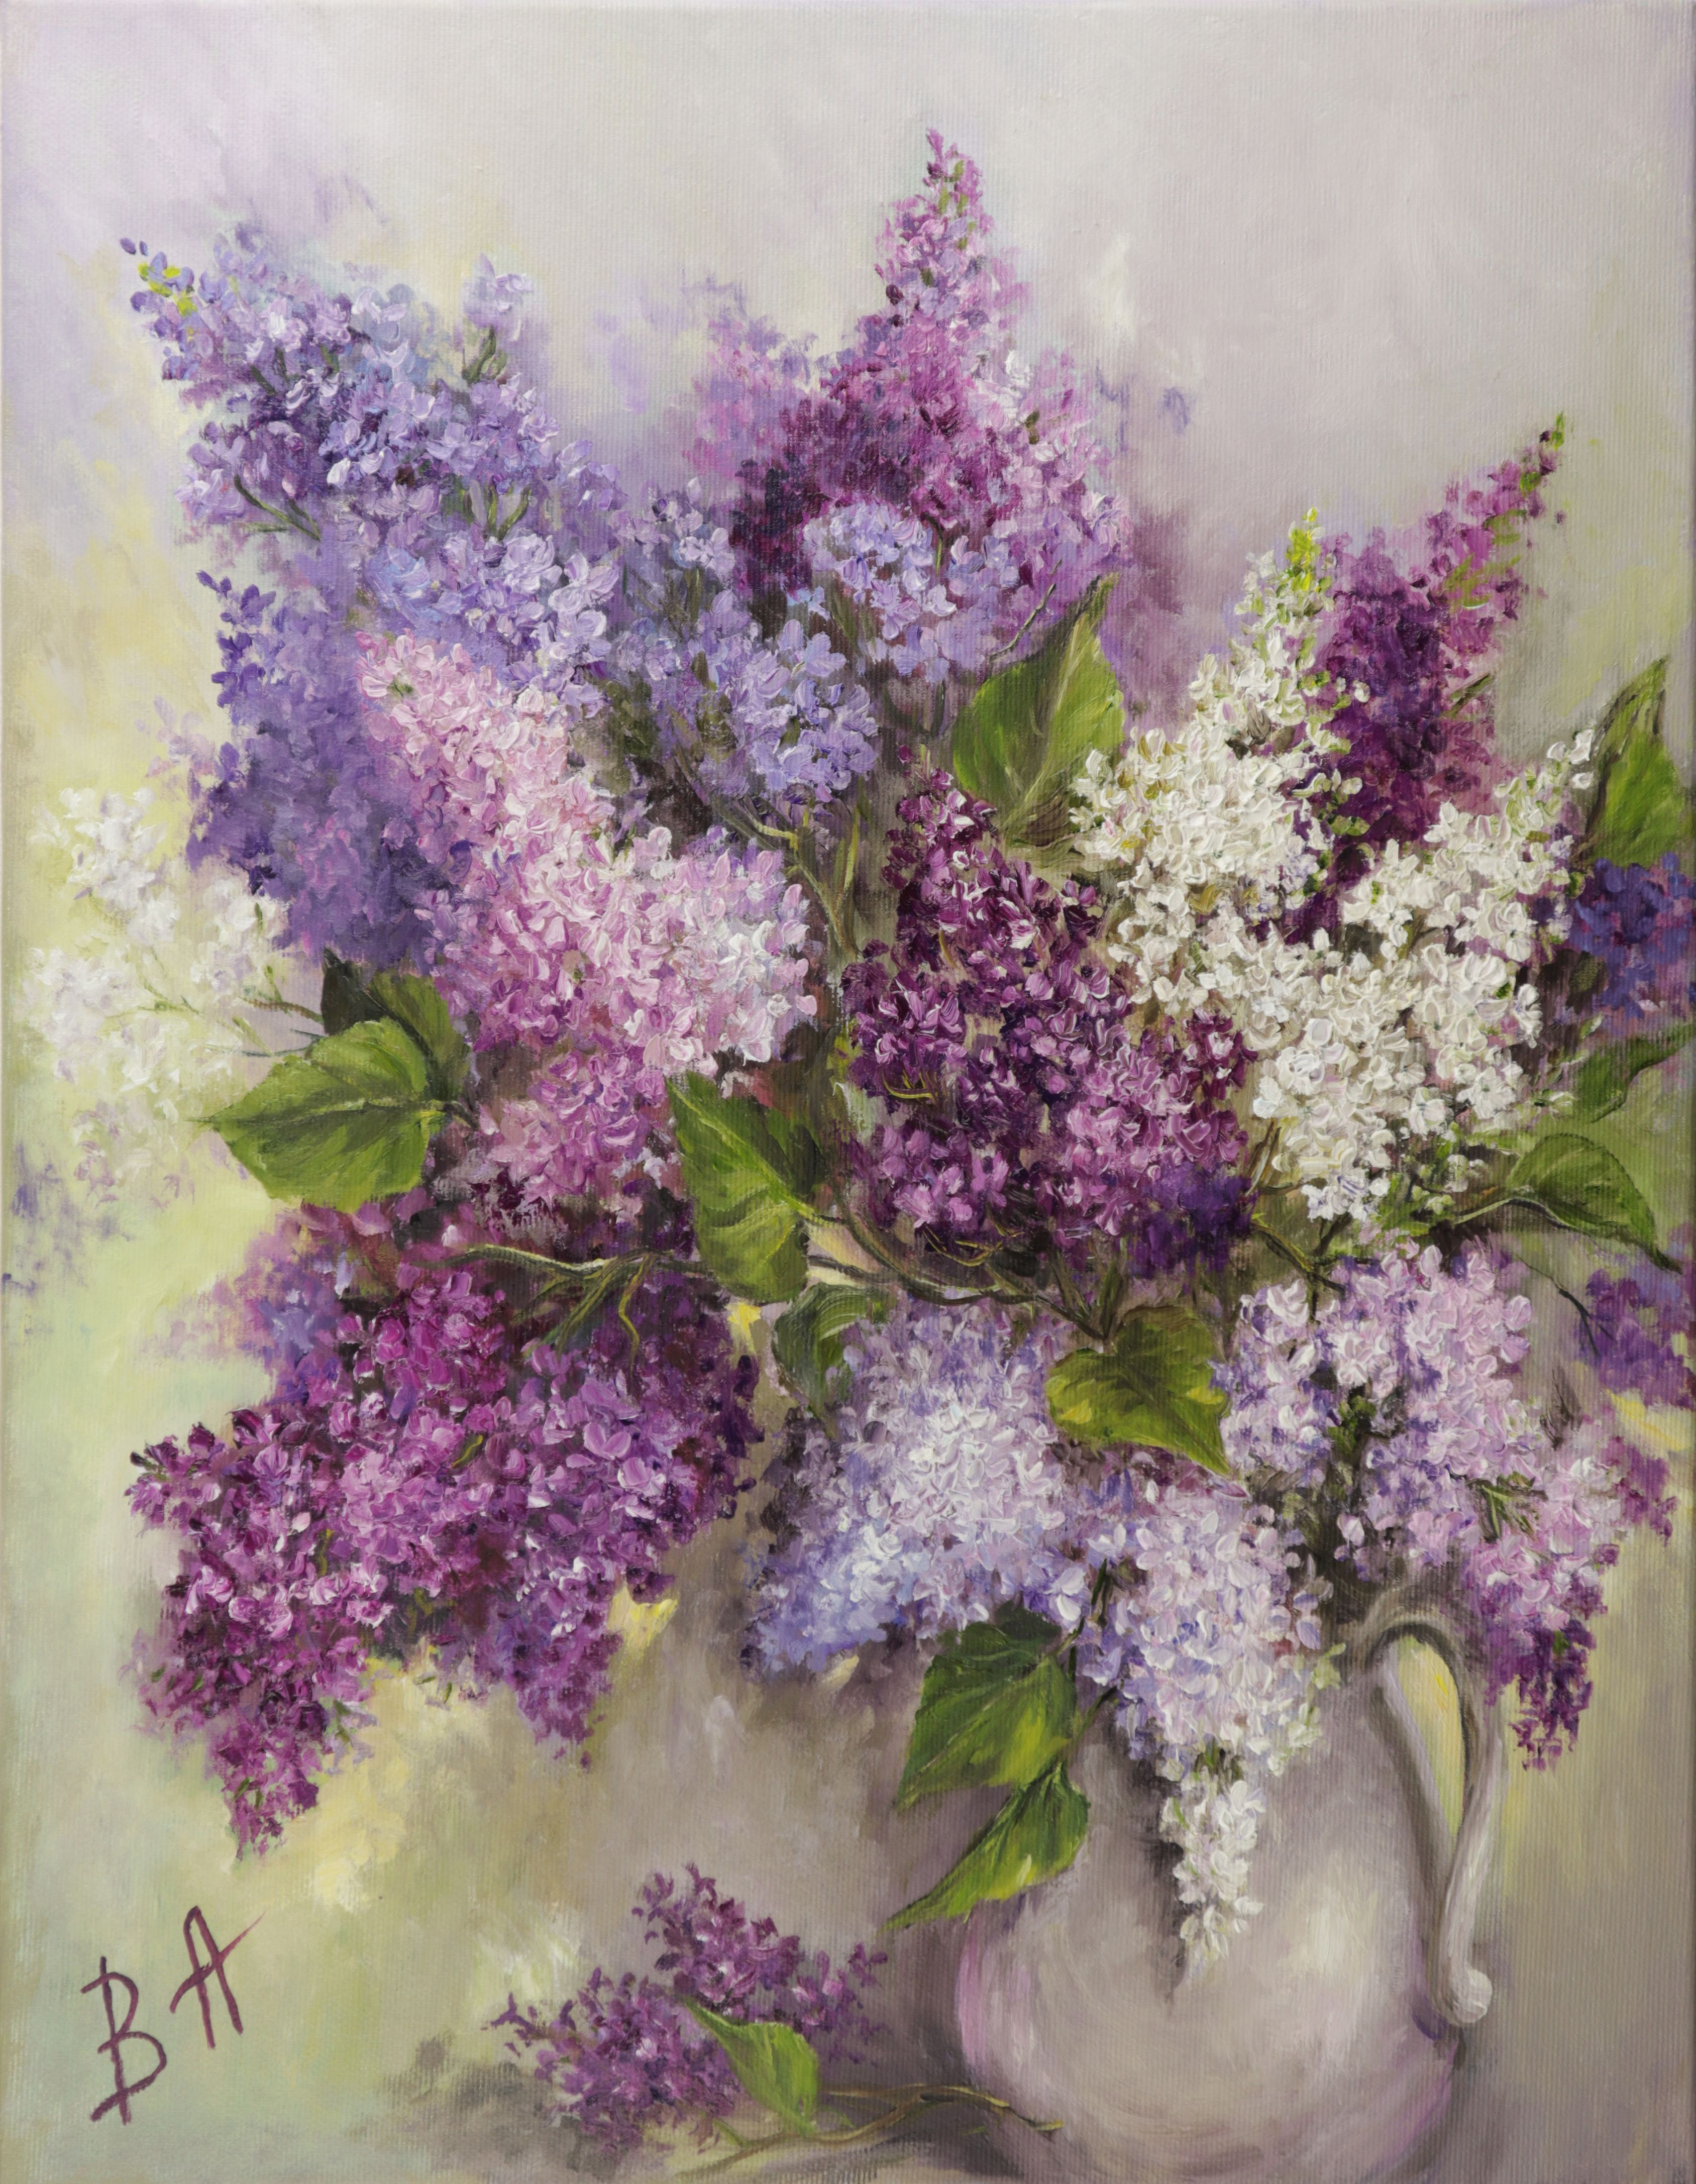 Still Life With Bouquet Of Lilacs In Vase Lilac Oil Painting Original Interior Oil Painting On Canvas With Floral Delicate Flowers Art In 2020 Oil Painting On Canvas Lilac Oils Flower Art